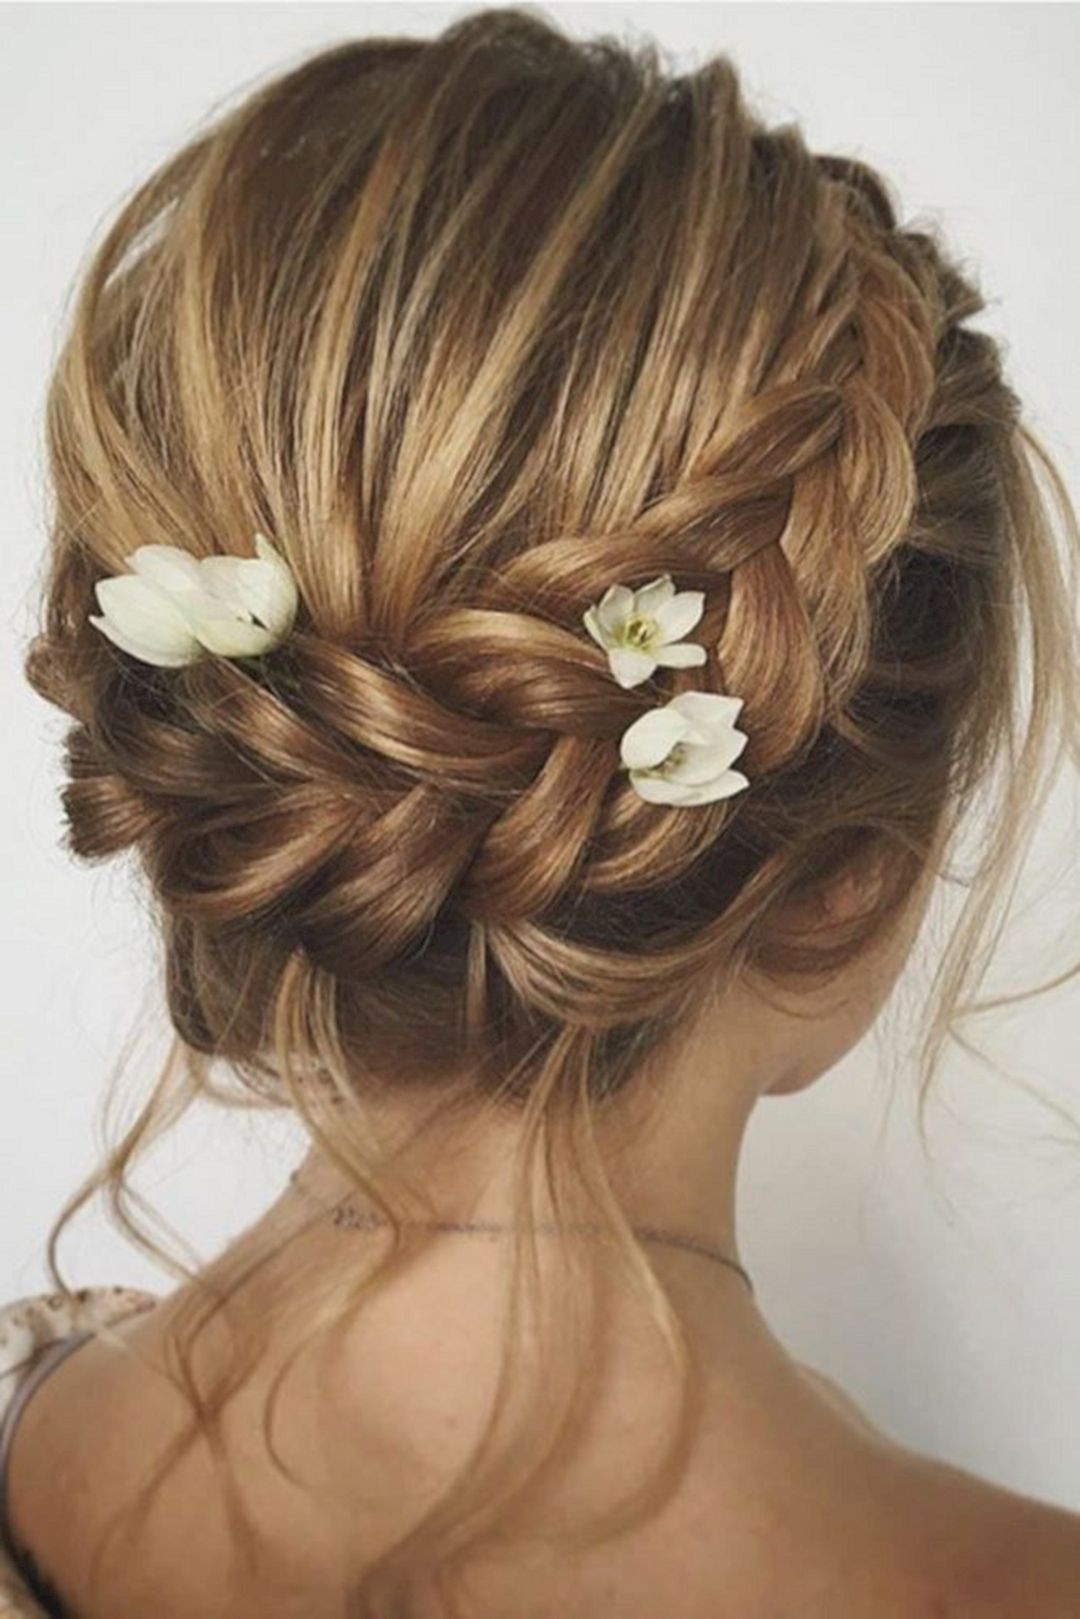 Bridesmaid Hairstyle  Wedding Bridesmaid Hairstyles for Short Hairs – OOSILE